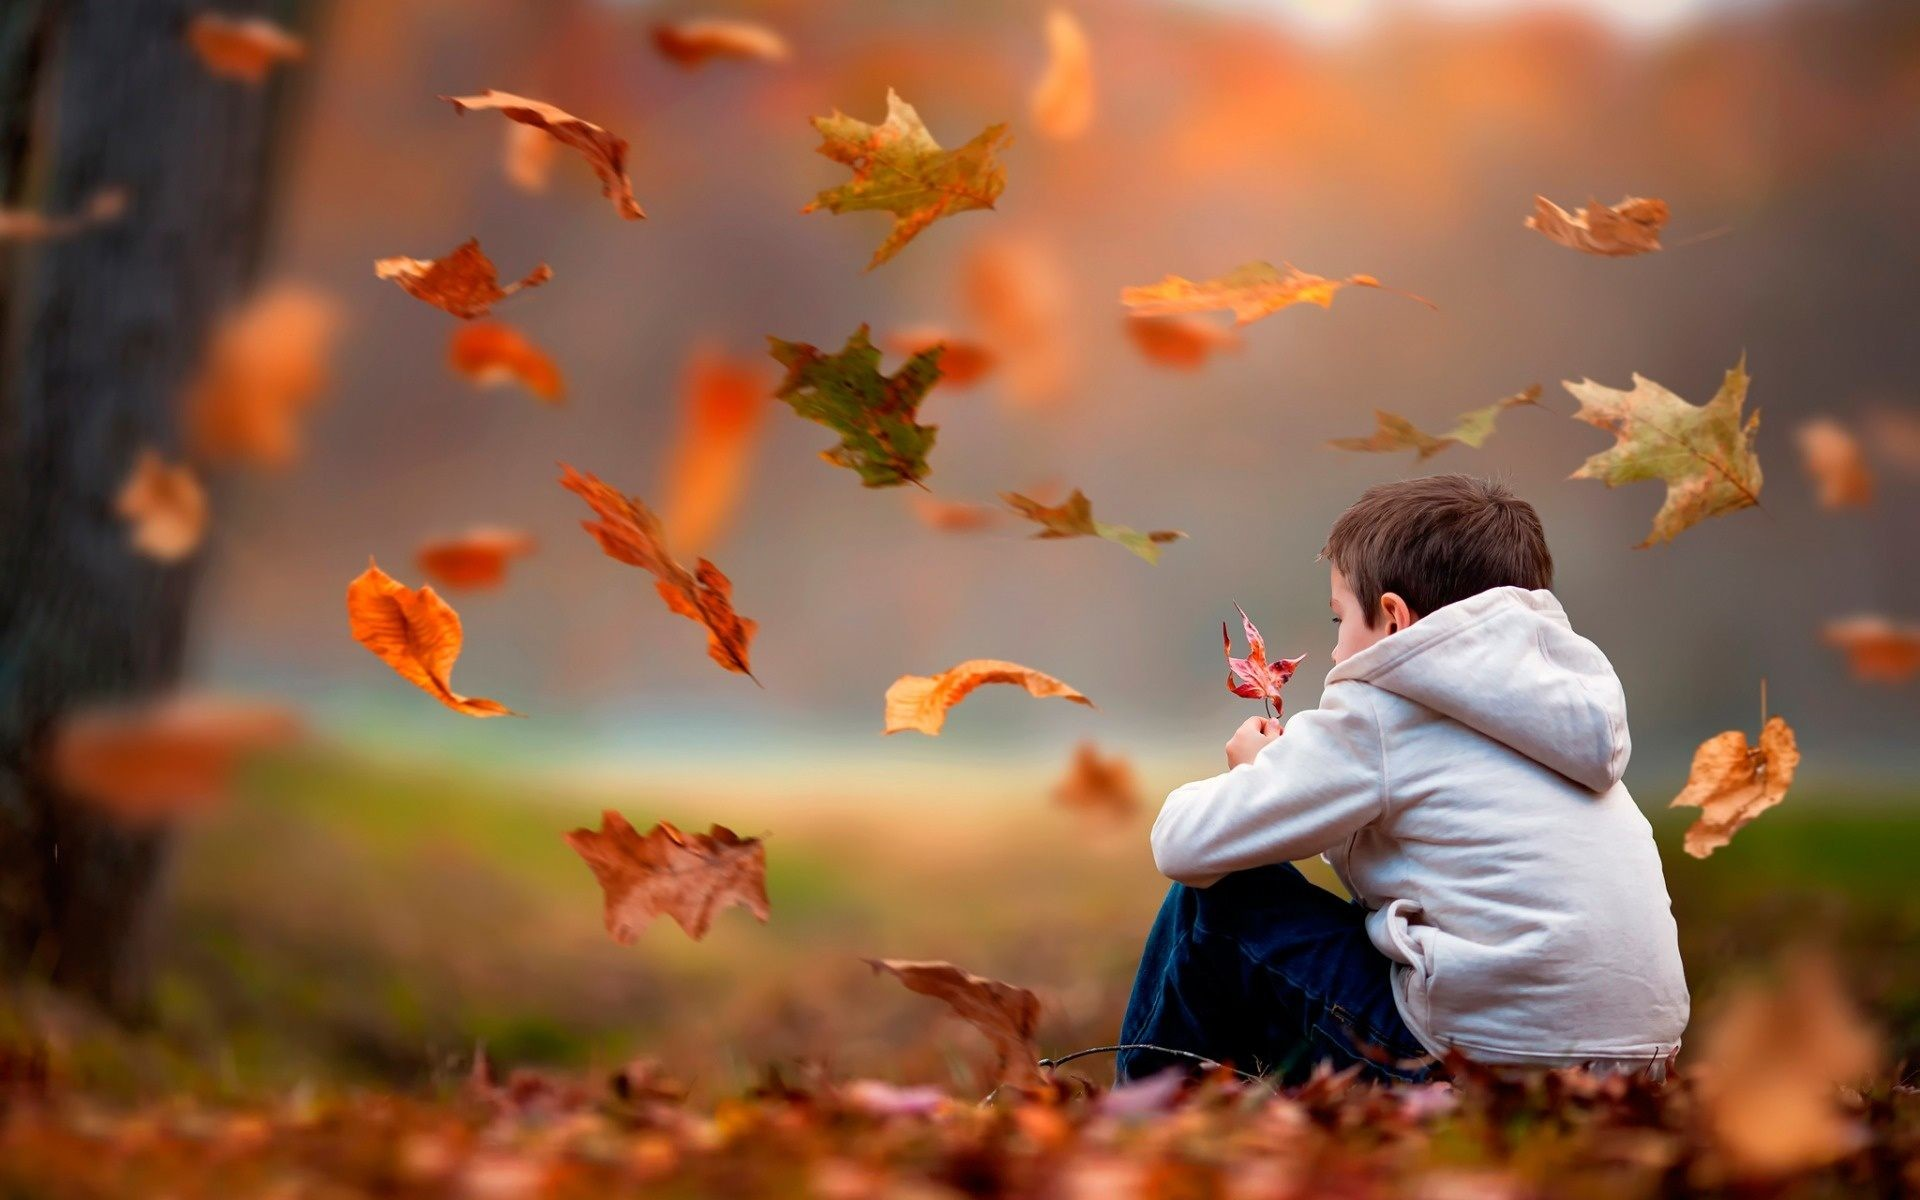 Cute Sad Crying Girl Wallpaper Sad Love Pictures Wallpapers 50 Images